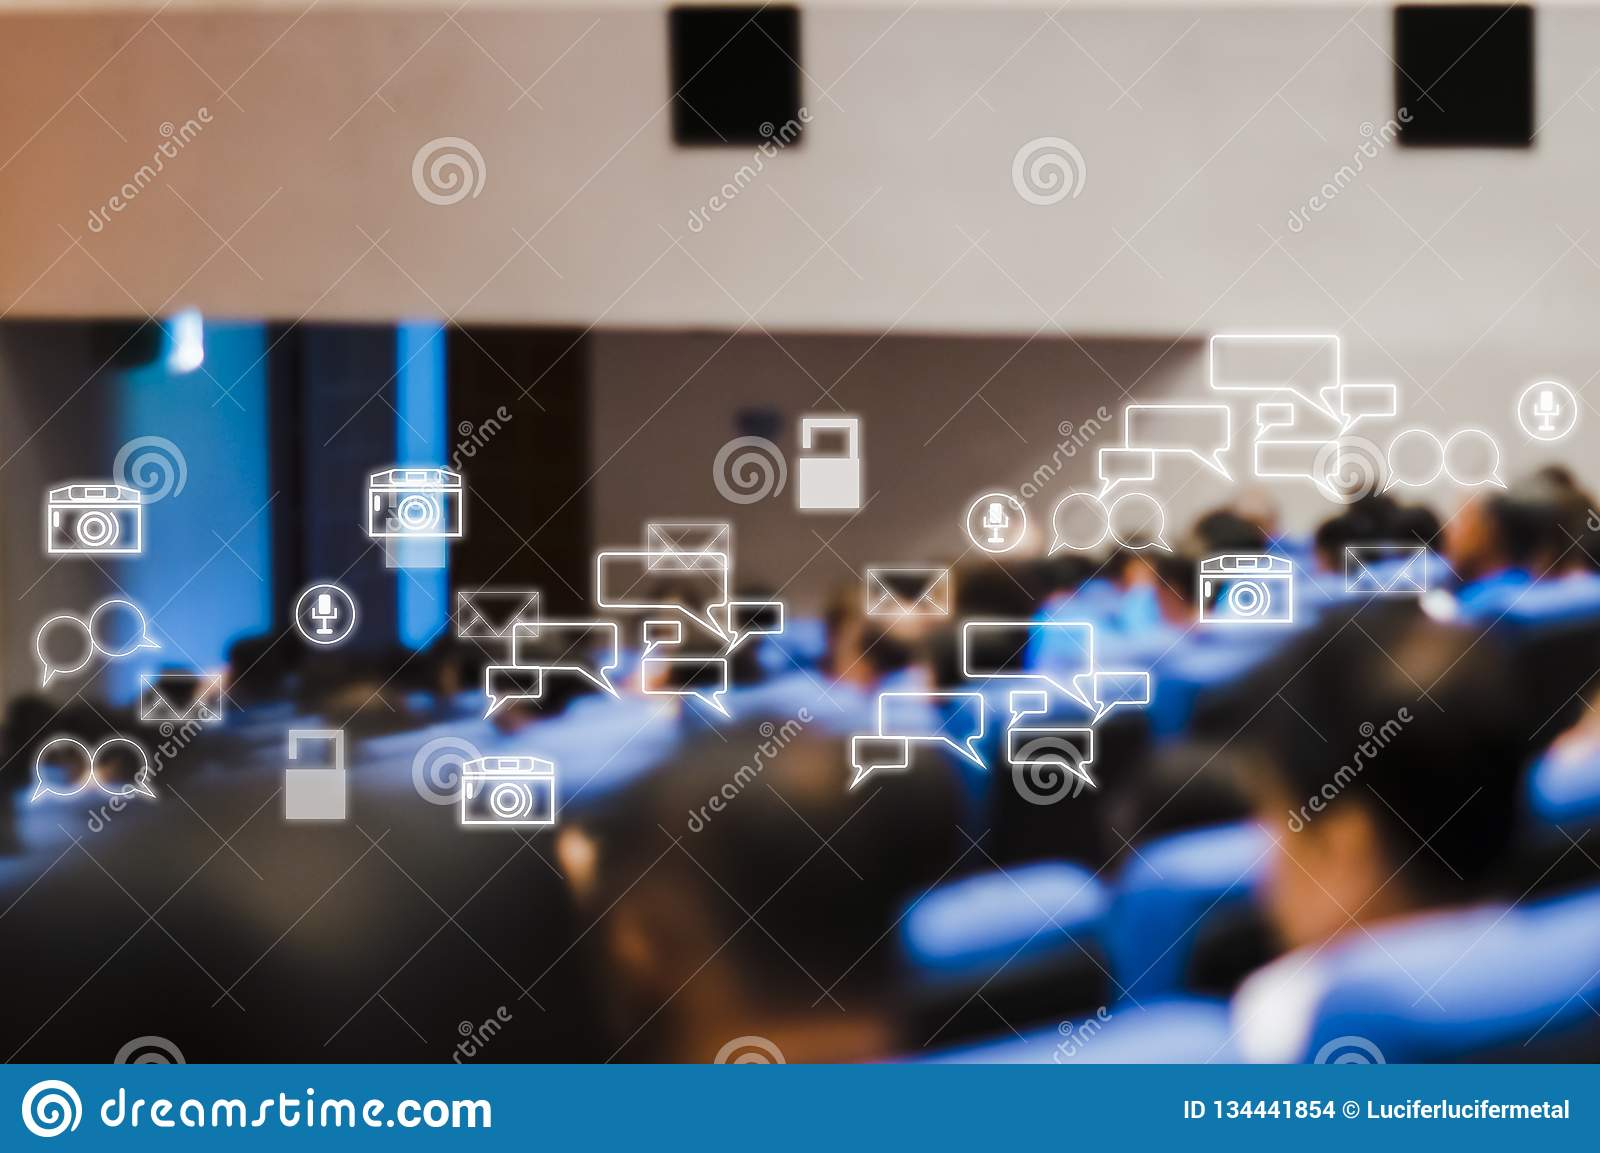 Rear view of audience attending meeting business seminar in conference room With Social Icons